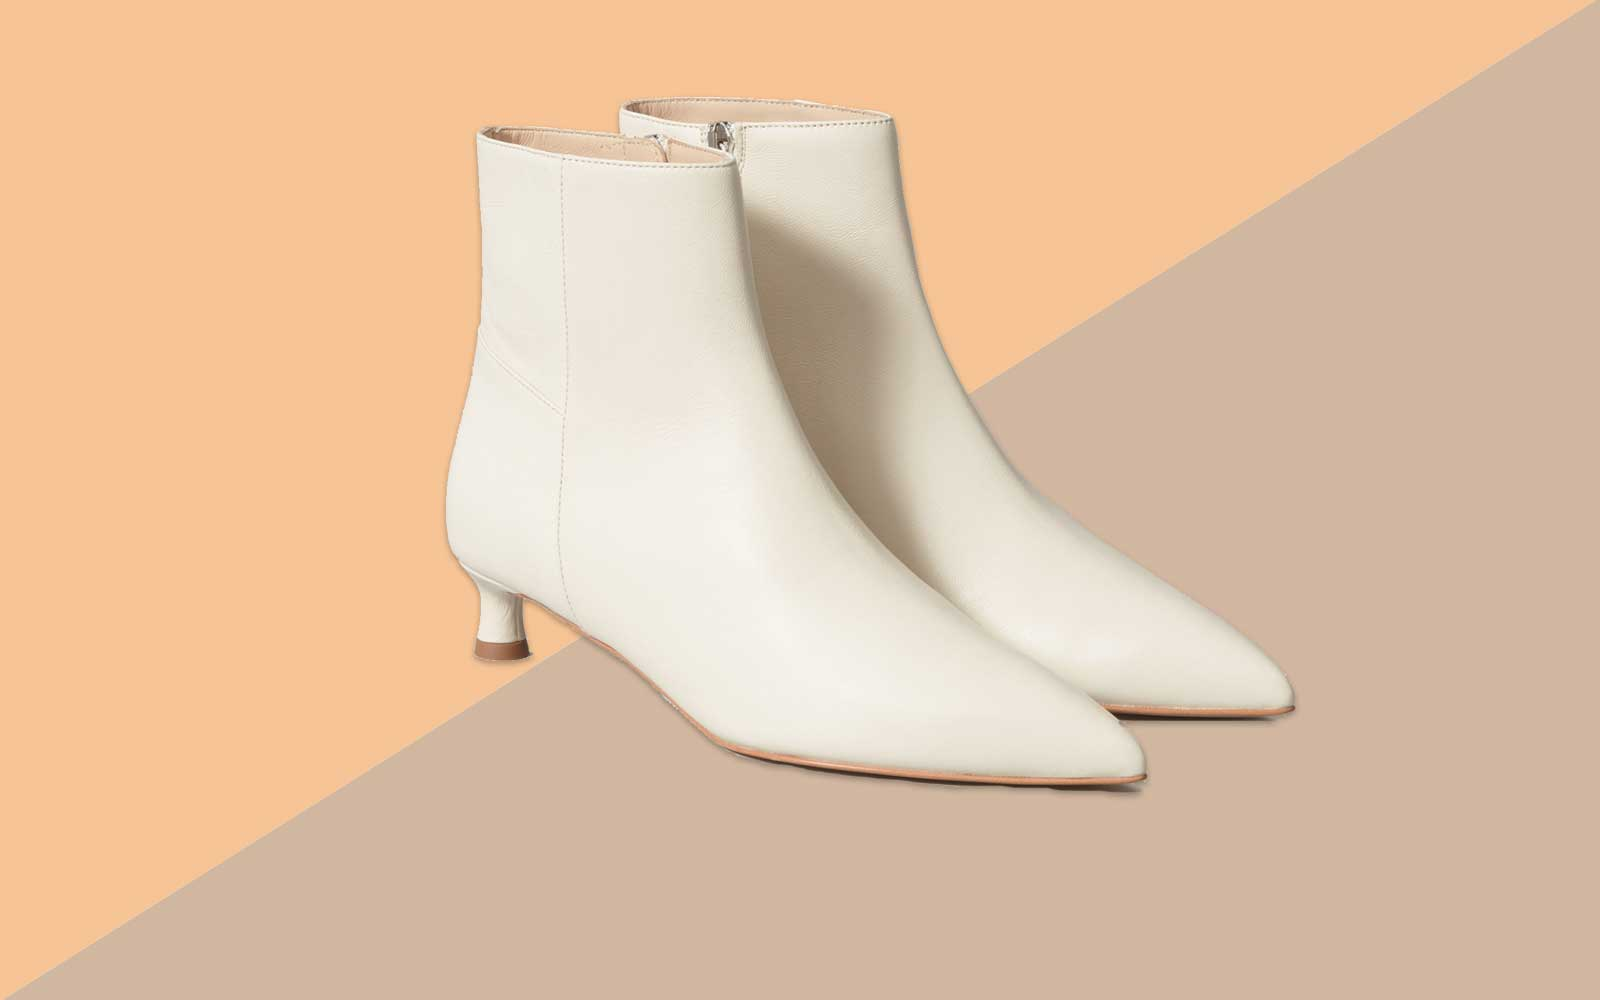 Cyber Monday: Everlane's Best Shoes Are